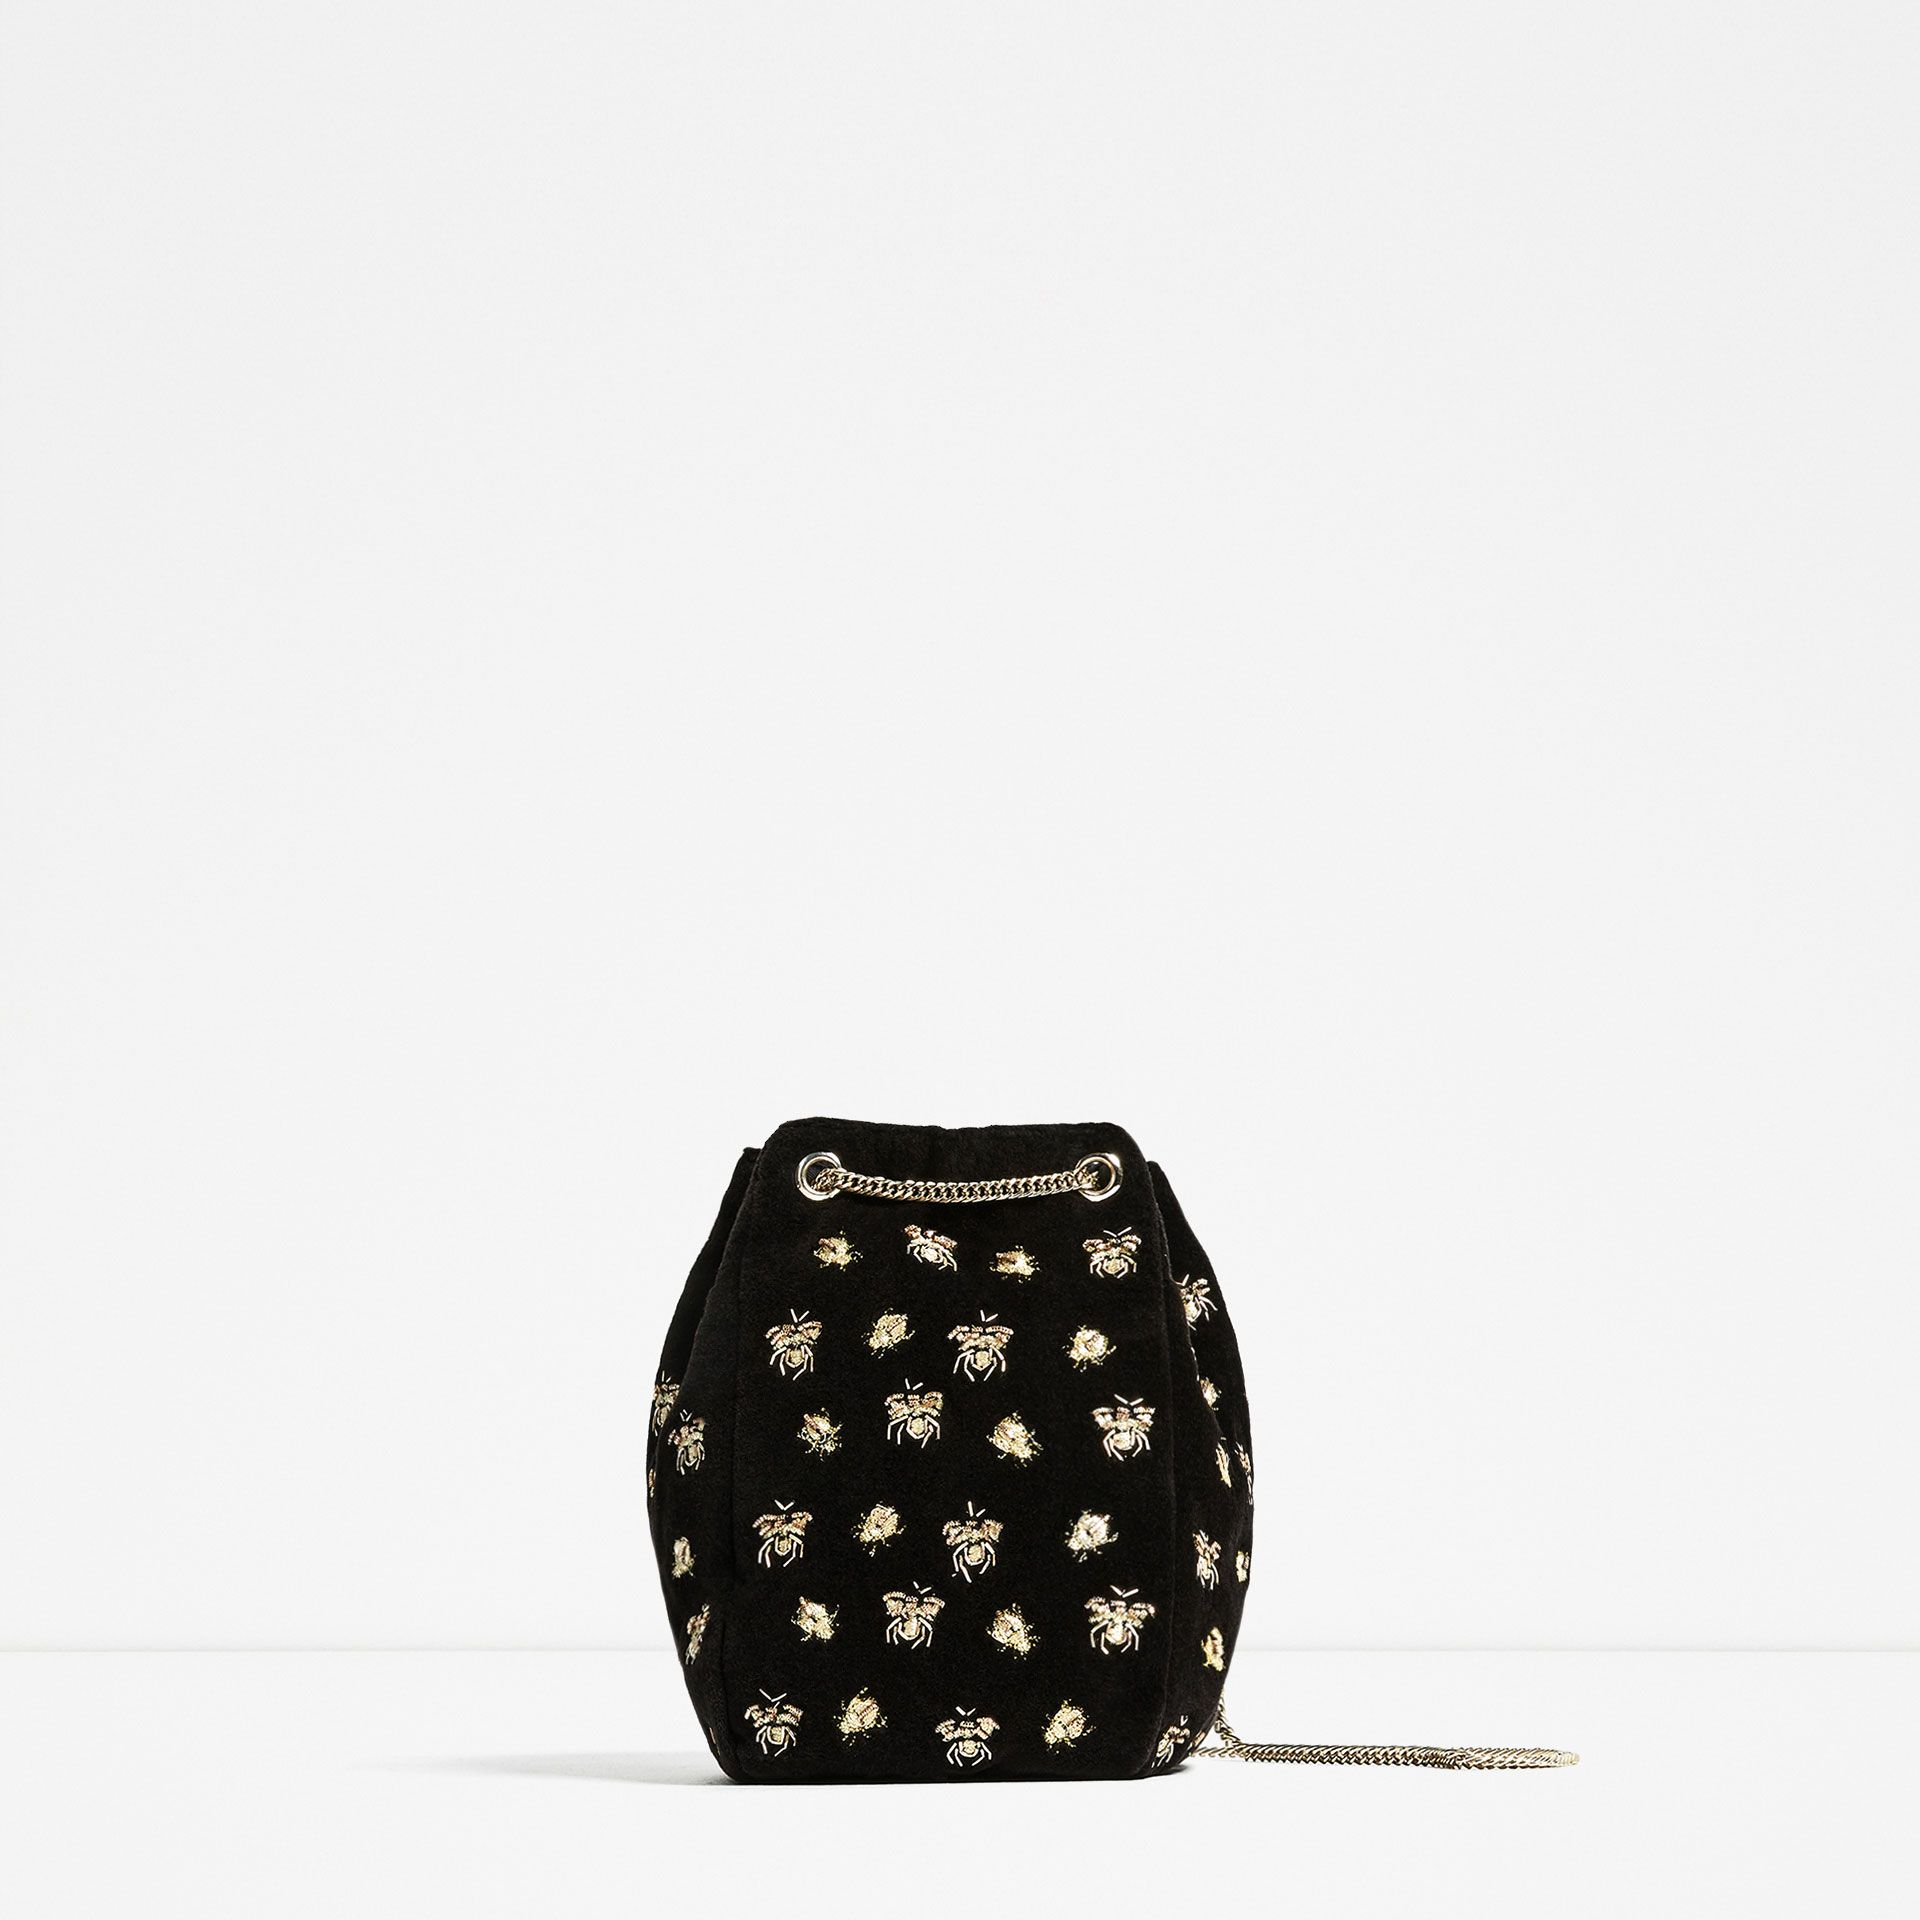 "<p>Bucket bags are perfect for when you just want to take ALL of your possessions out. They'll call you Mary Poppins (only your bag is cuter).</p><p><a href=""http://www.zara.com/uk/en/woman/bags/view-all/embroidered-bees-bucket-bag-c734144p3712560.html"" target=""_blank"">Embroidered bucket bag, £29.99, Zara</a></p>"